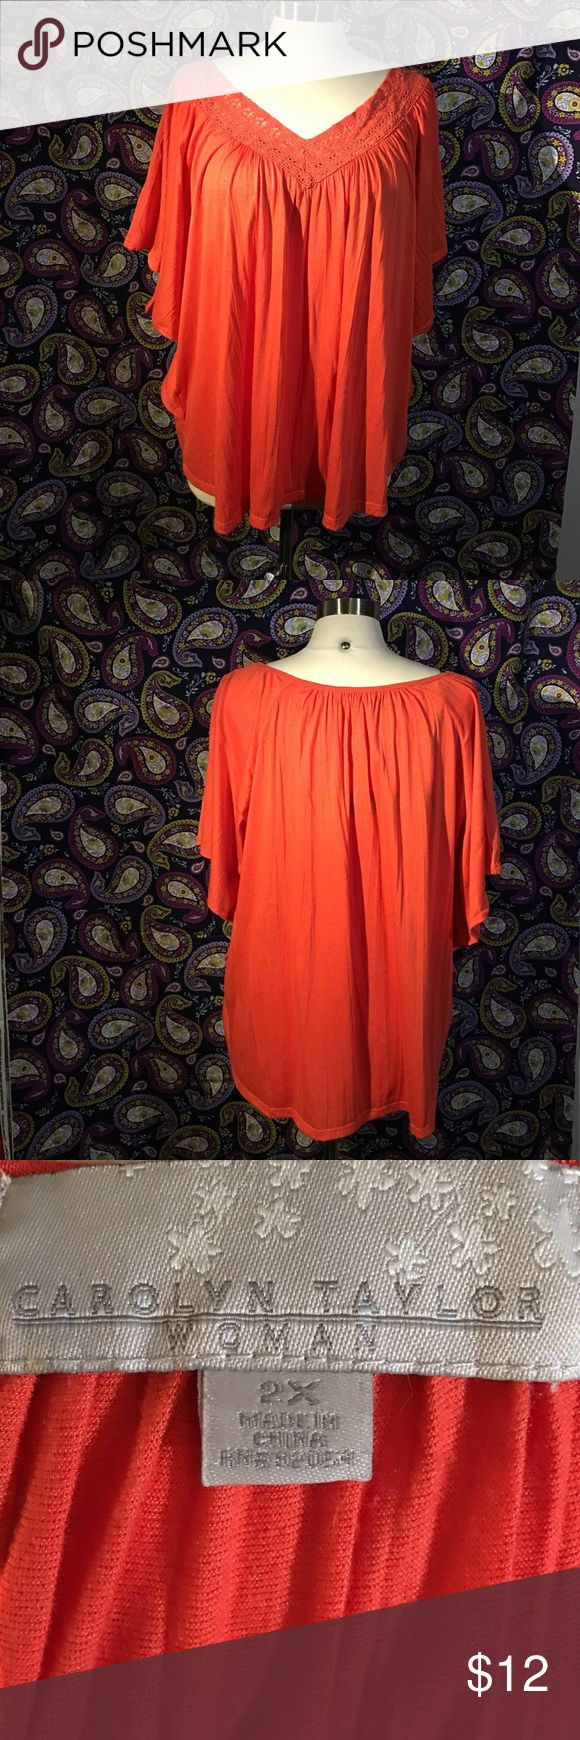 Beautiful orange batwing blouse Orange batwing blouse made of polyester and rayon and is soft as combed cotton. Has lace neckline. In perfect shape! carolyn Taylor Tops Blouses